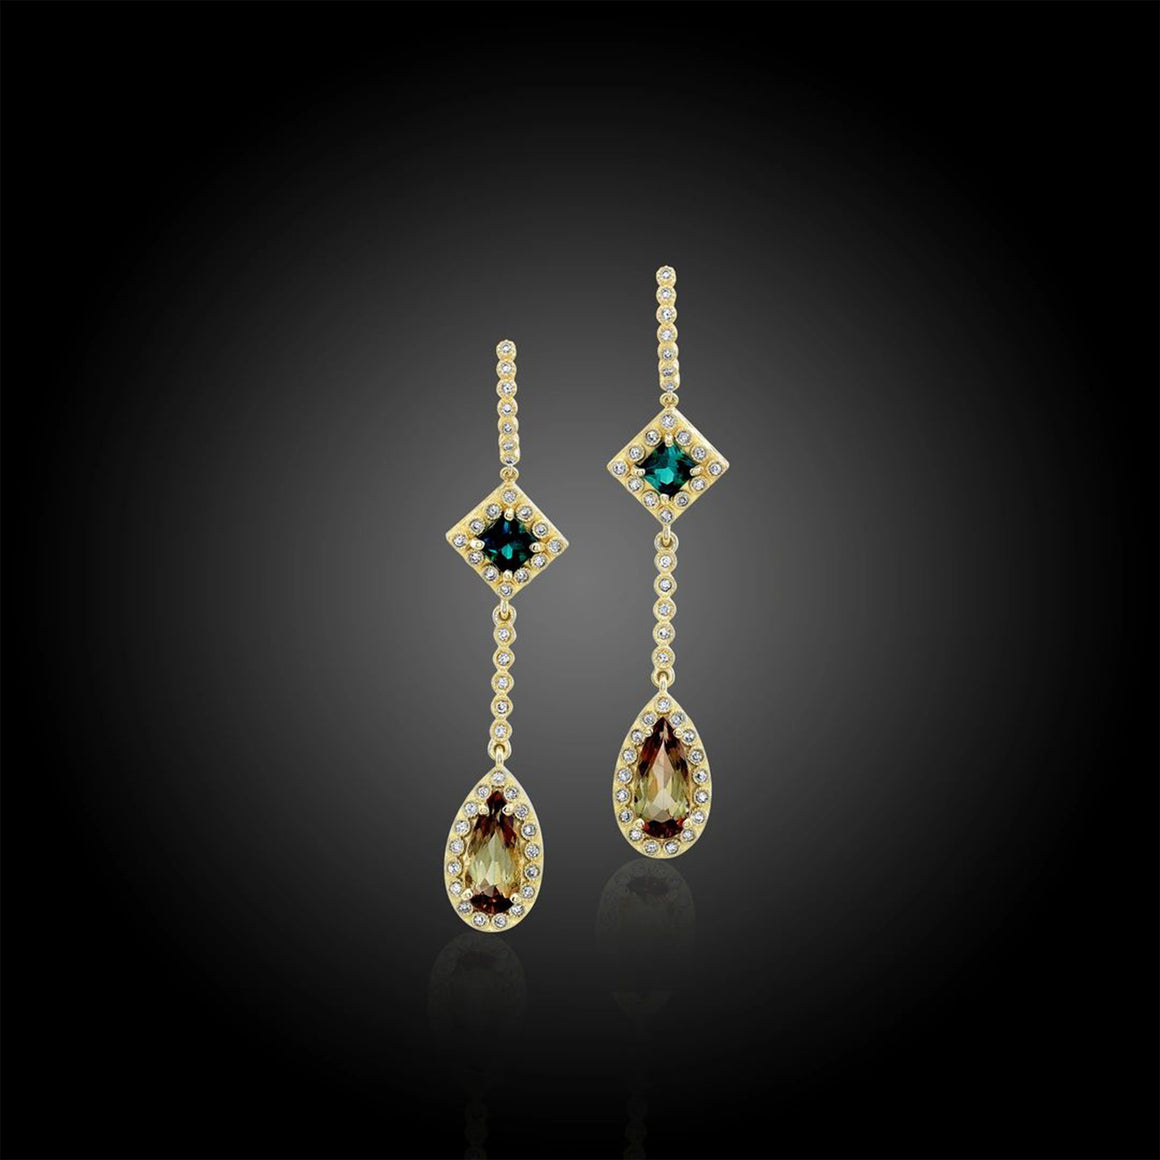 Andalusite, Indicolite and Diamond, 18k Yellow Gold Earrings